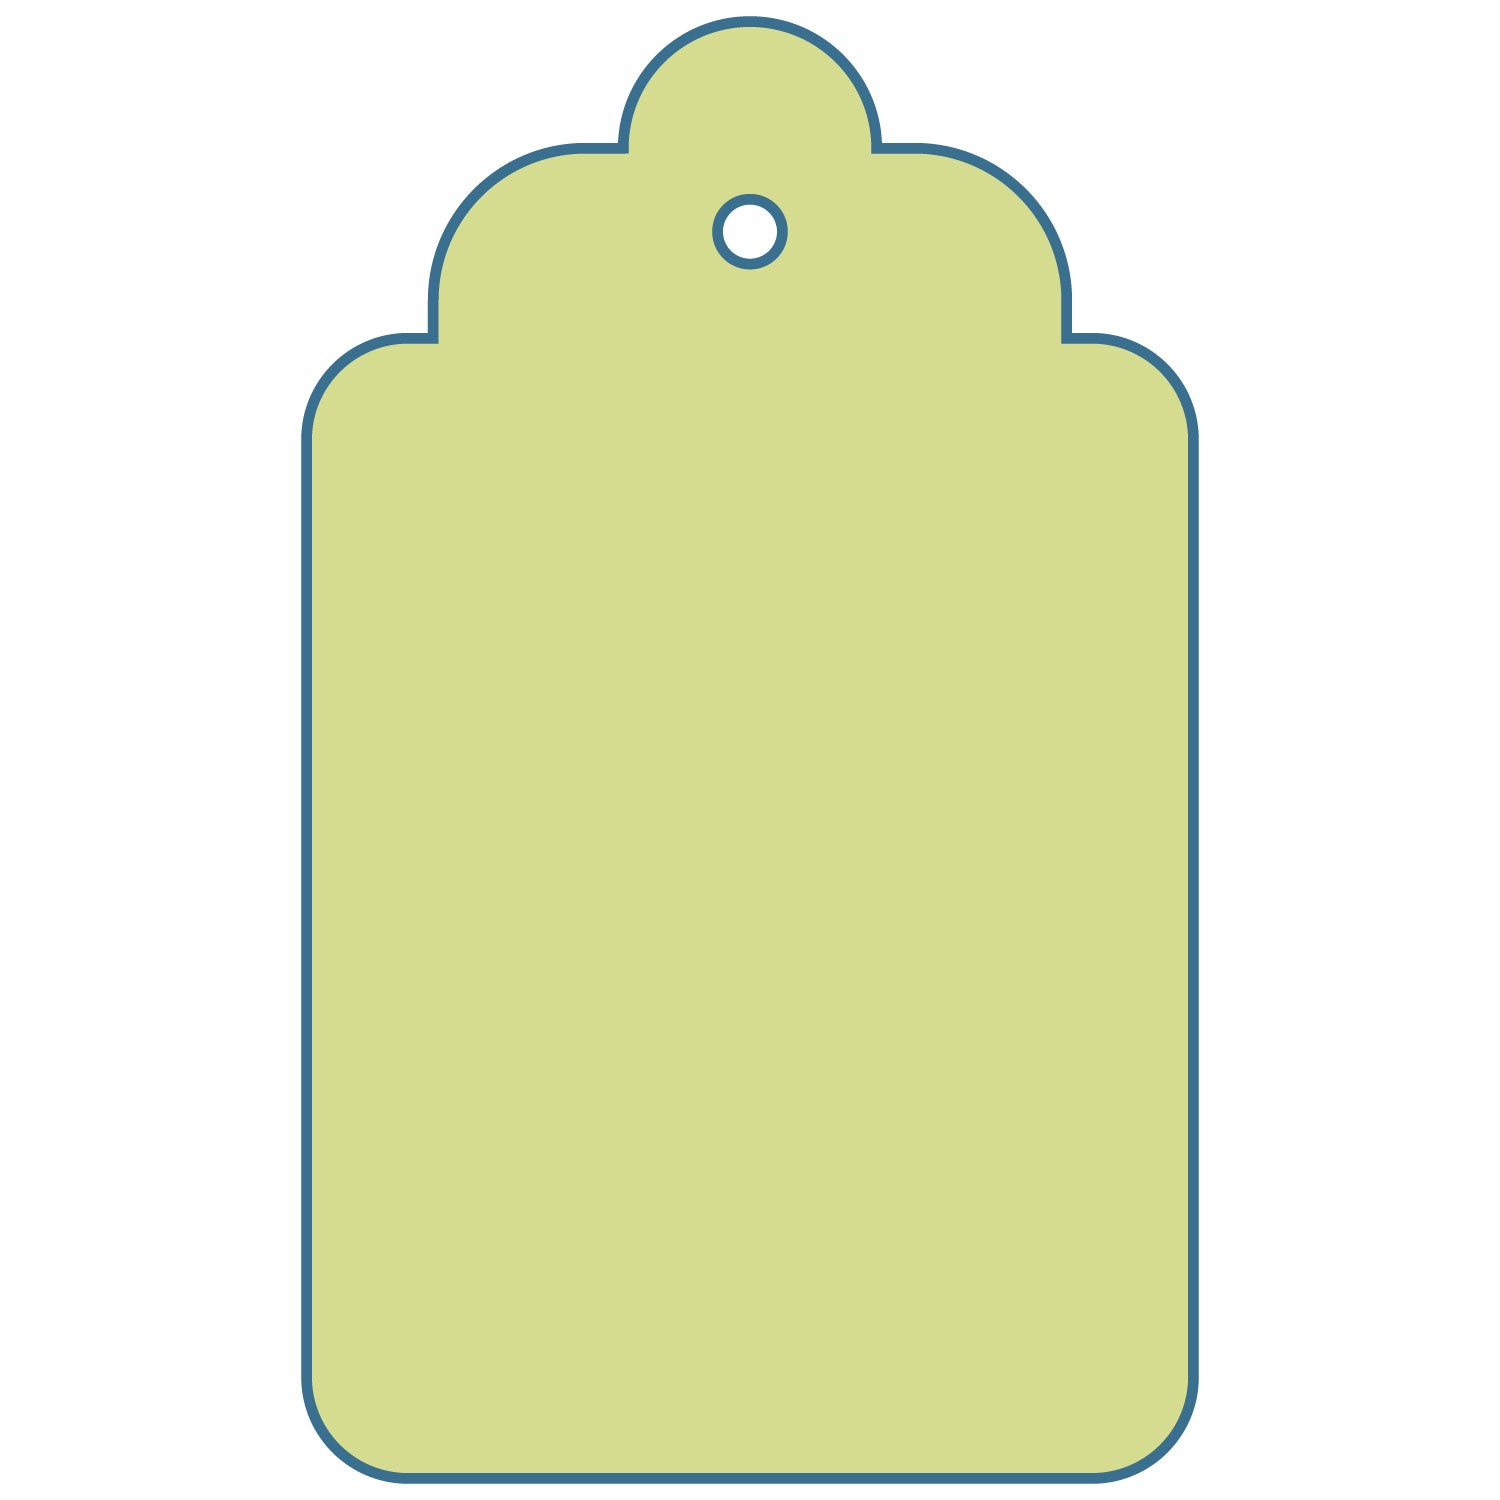 Free Gift Tag Outline, Download Free Clip Art, Free Clip Art.